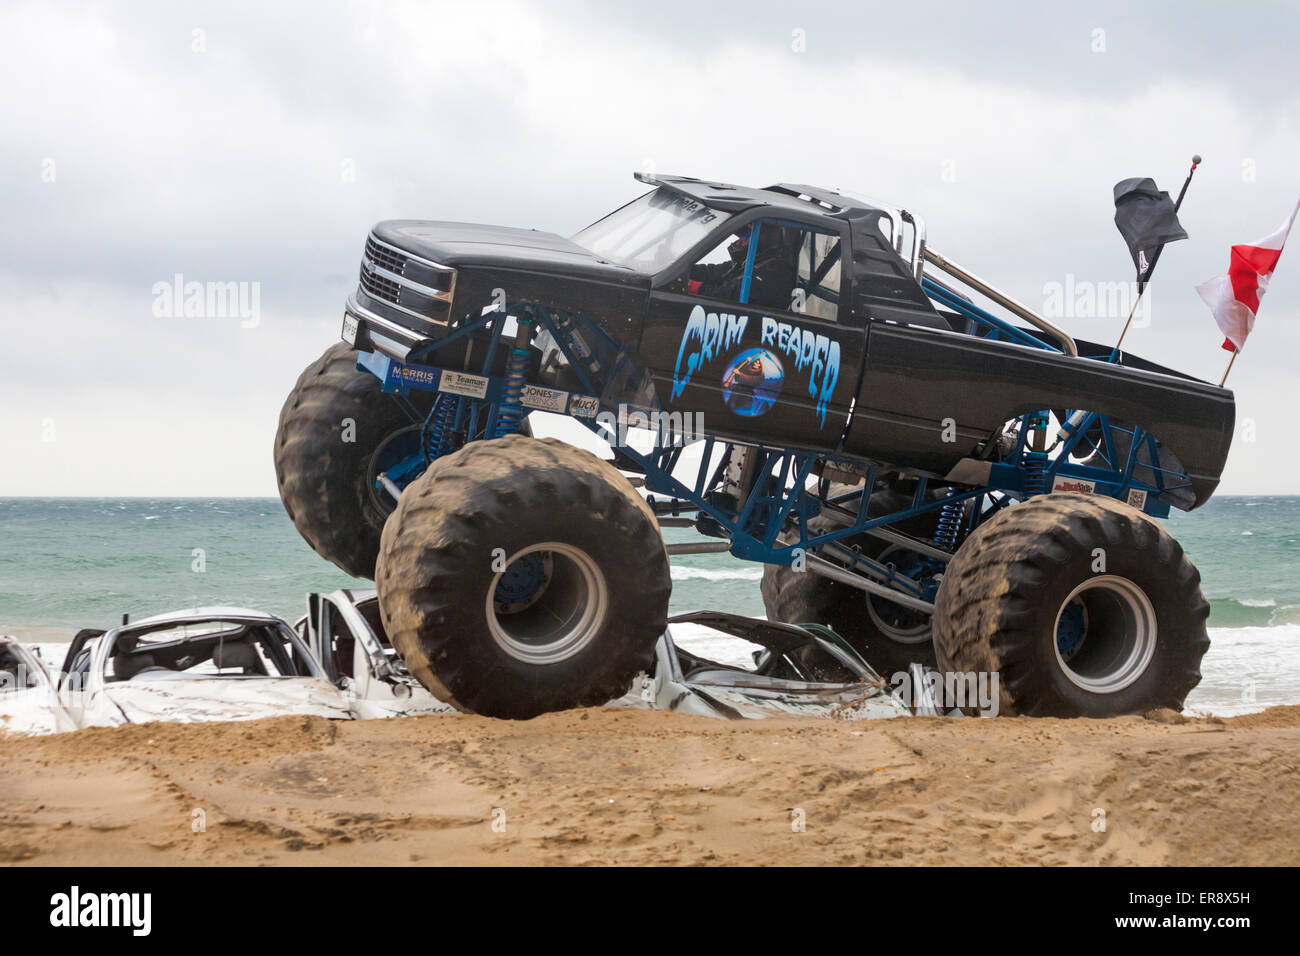 Grim Reaper Monster Truck Crushes Cars On The First Day Of The